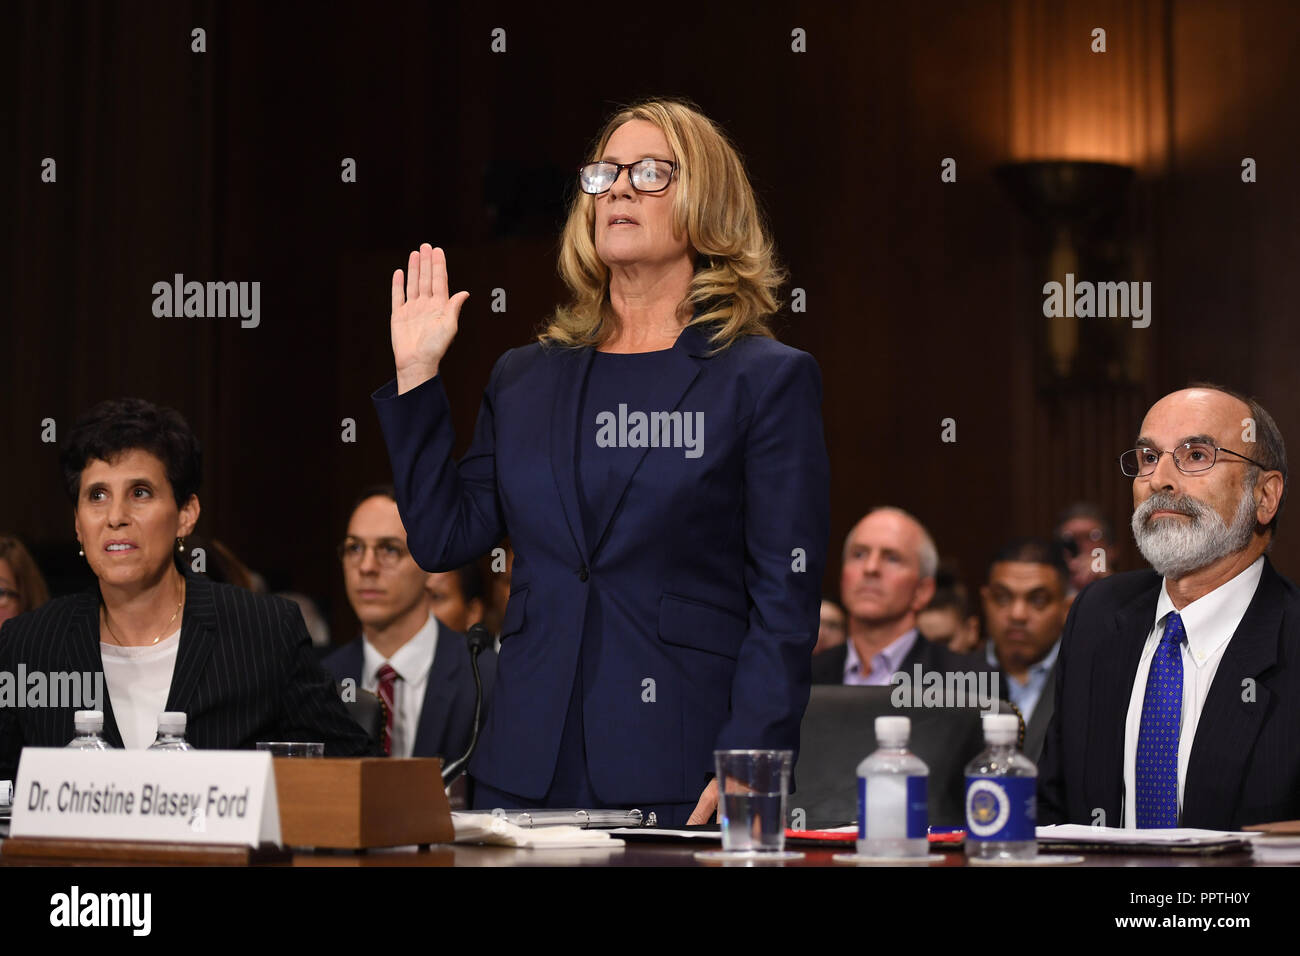 Christine Blasey Ford, the woman accusing Supreme Court nominee Brett Kavanaugh of sexually assaulting her at a party 36 years ago, testifies before the US Senate Judiciary Committee on Capitol Hill in Washington, DC, September 27, 2018.  / POOL / SAUL LOEB | usage worldwide Stock Photo